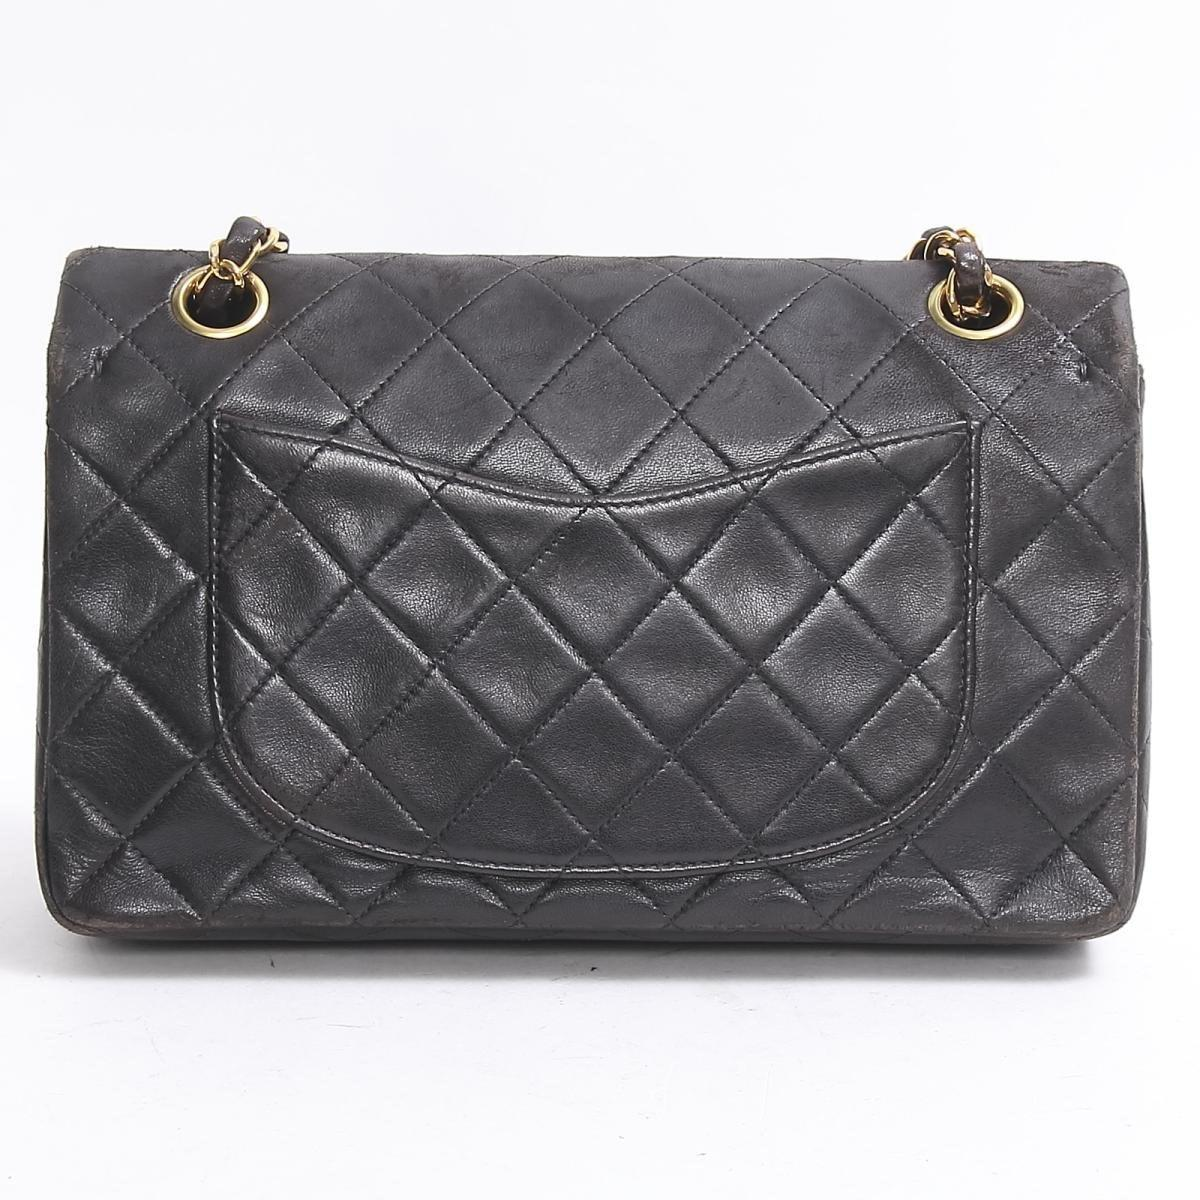 879d89afca50 Lyst - Chanel Matelasse W Flap Chain Shoulder Bag Lambskin Leather ...